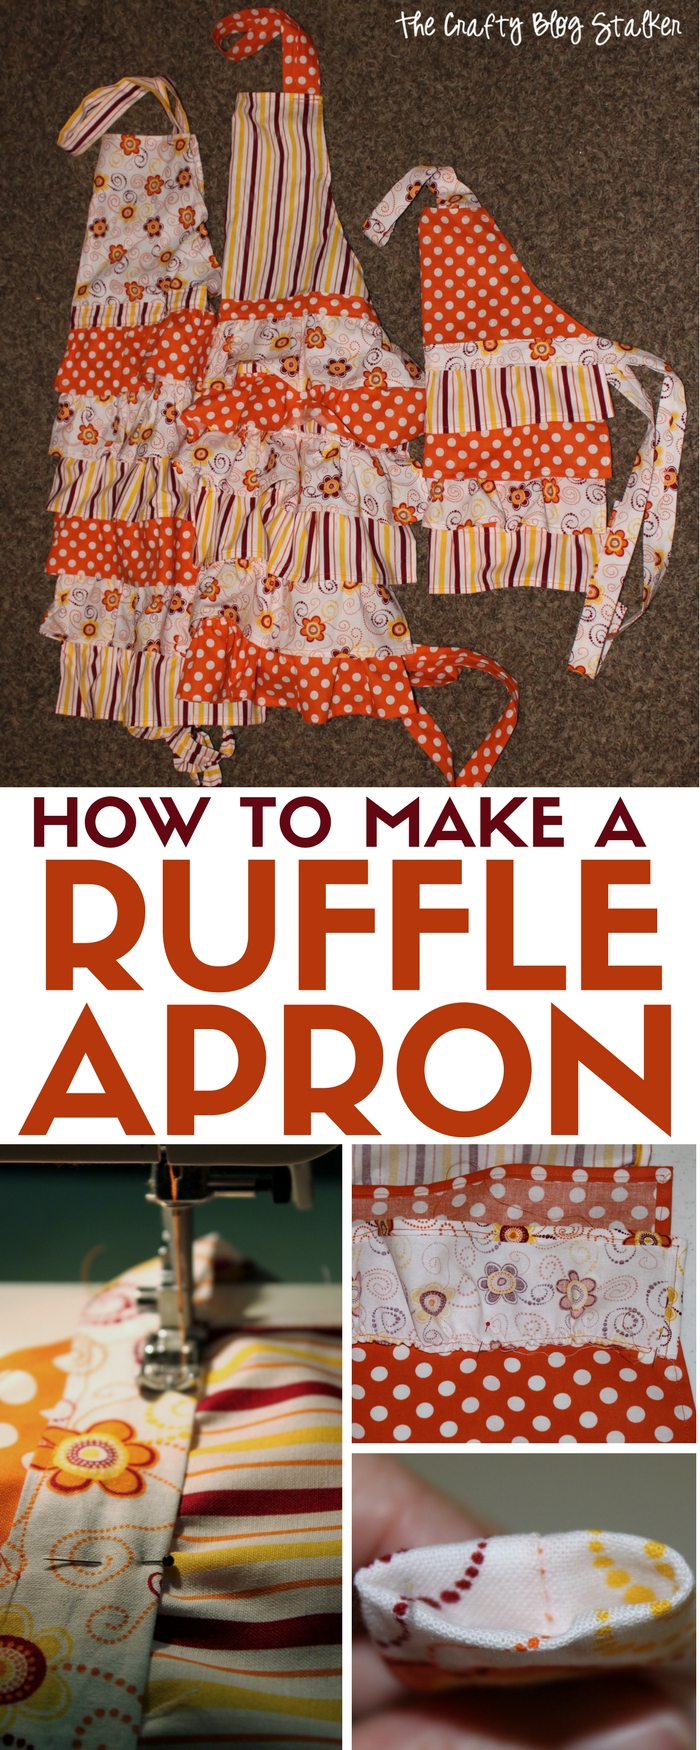 How to Sew a Ruffle Apron | Easy Sew | No Pattern Sewing | Handmade Gift | DIY Craft Tutorial Idea